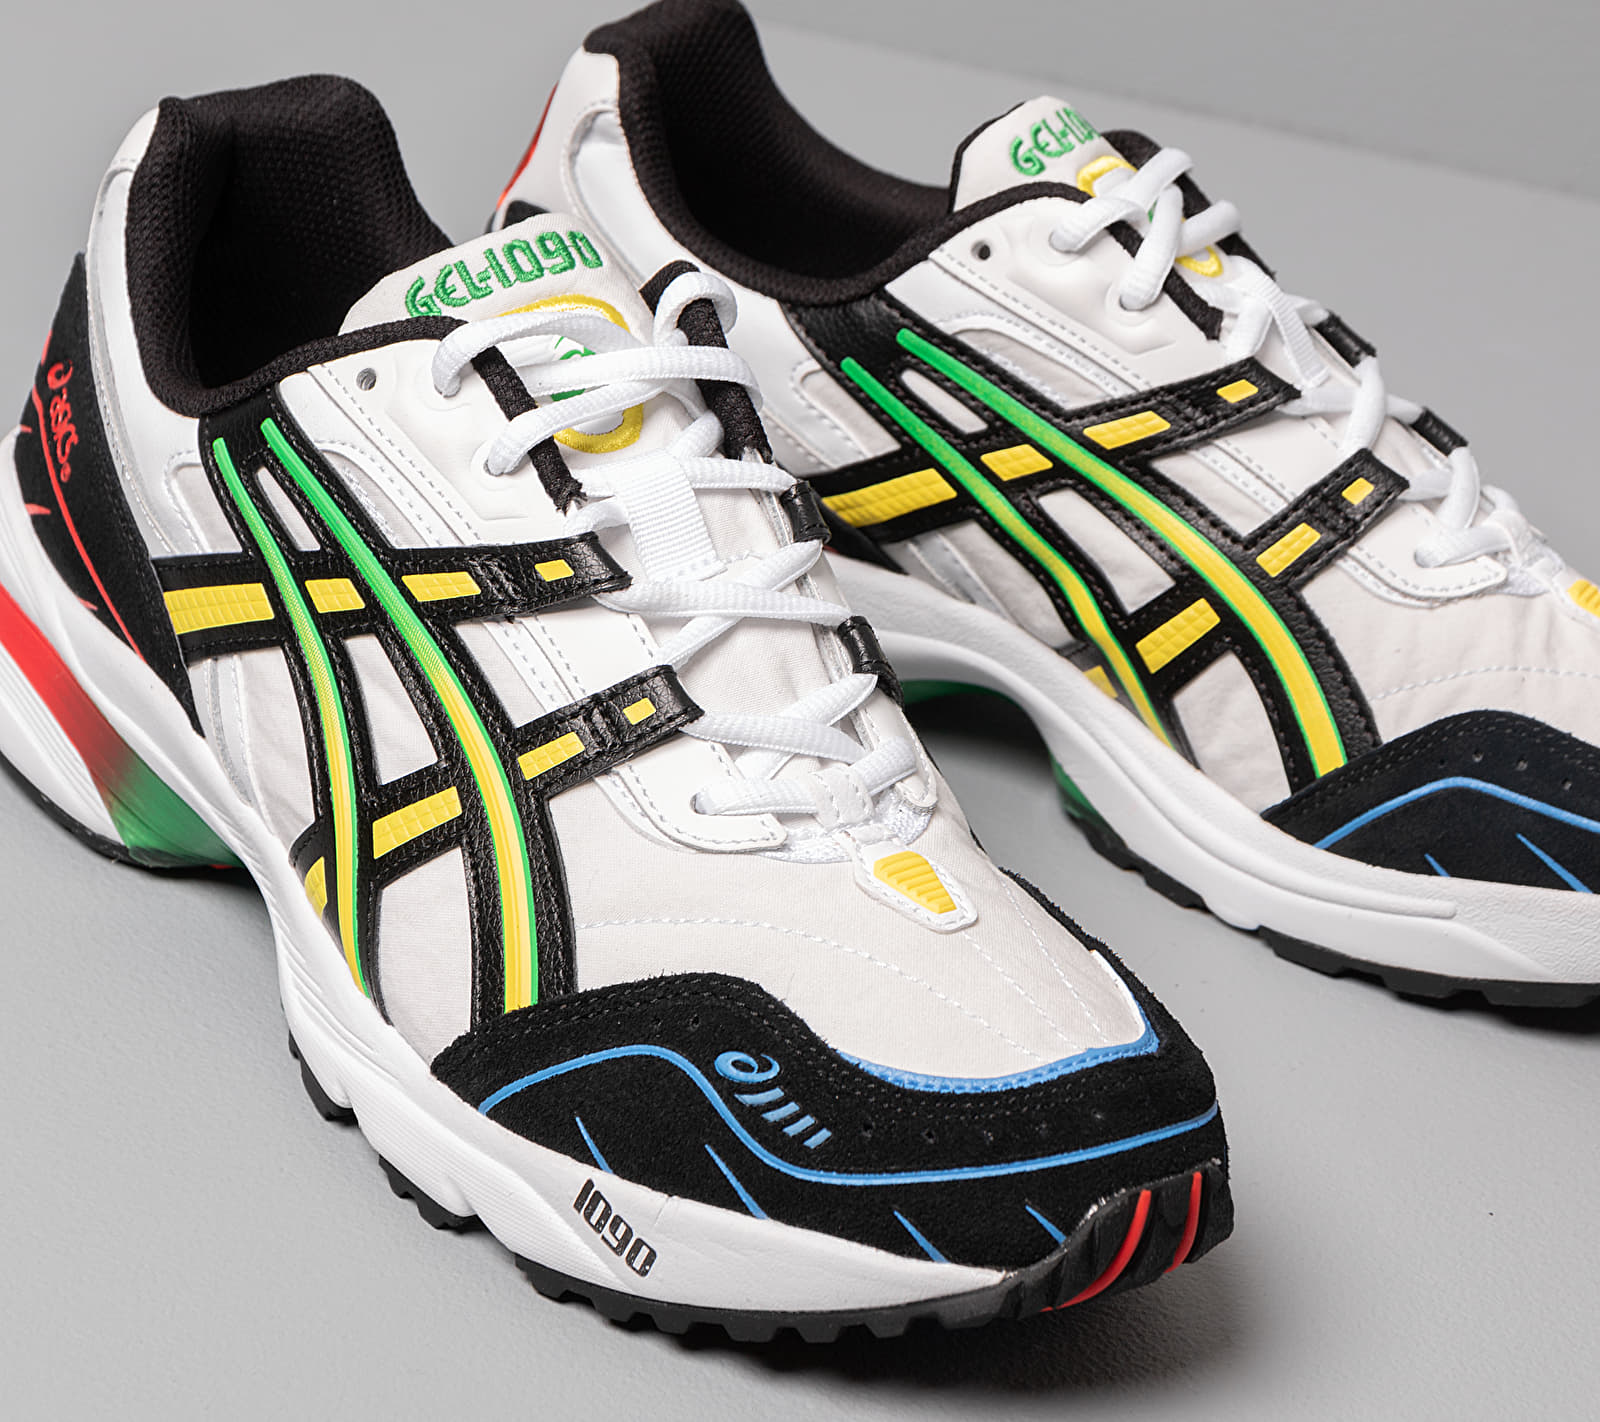 Asics GEL-1090 White/ Black EUR 42.5